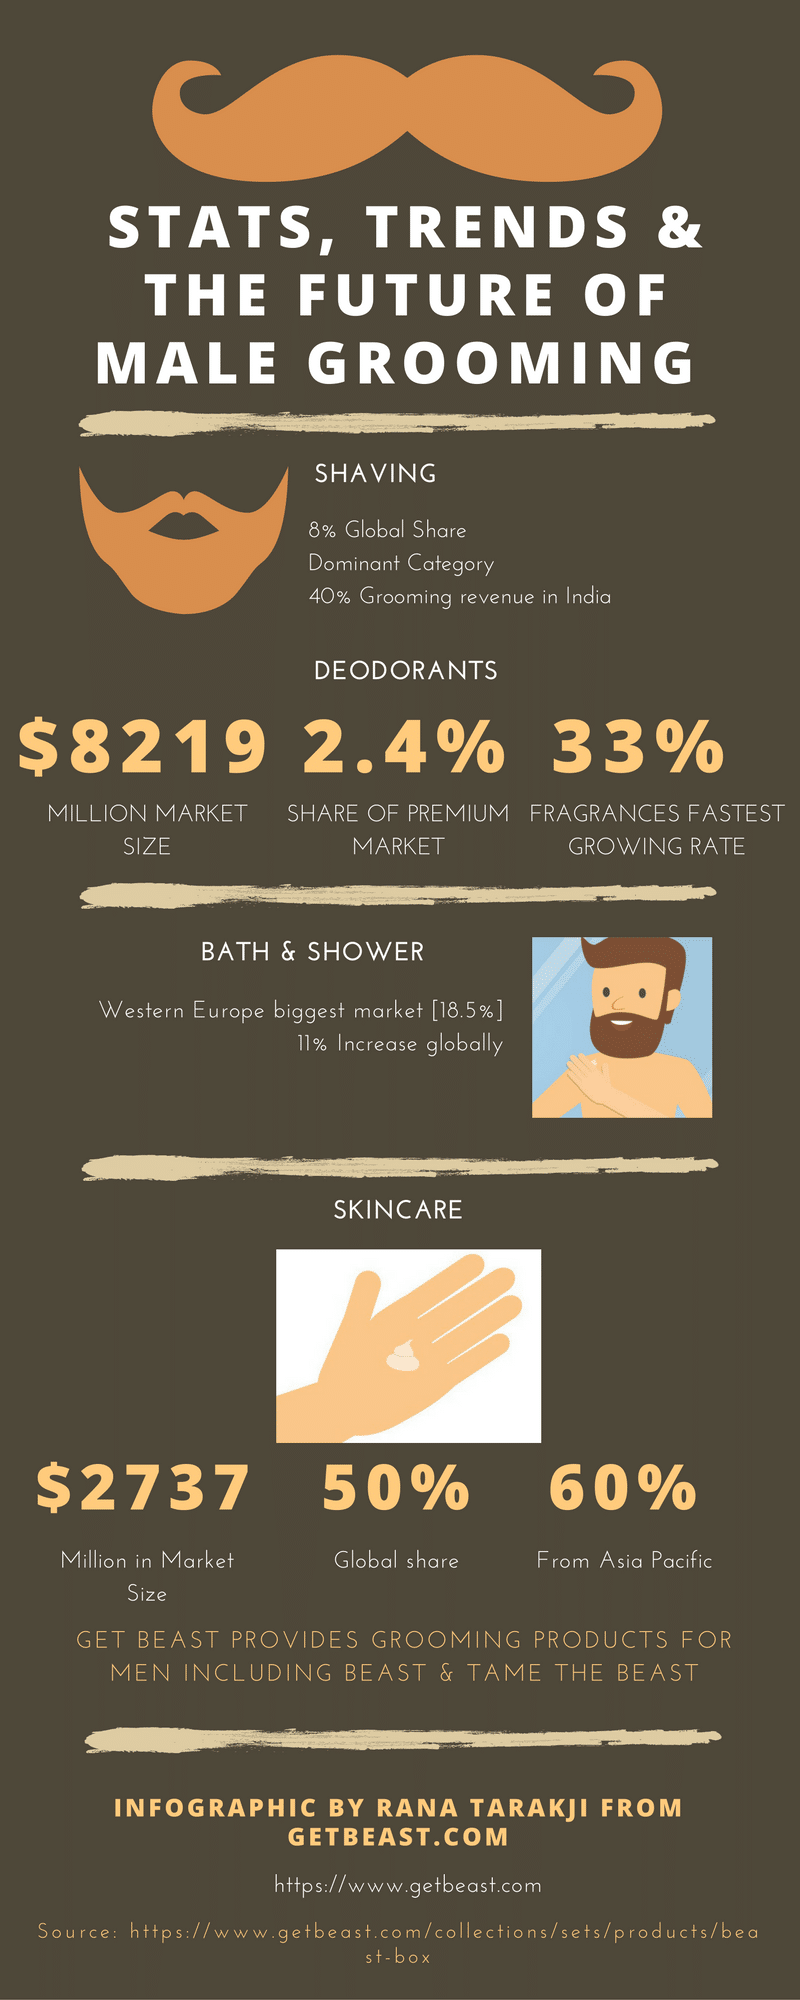 Stats Trends Future Male Grooming Infographic